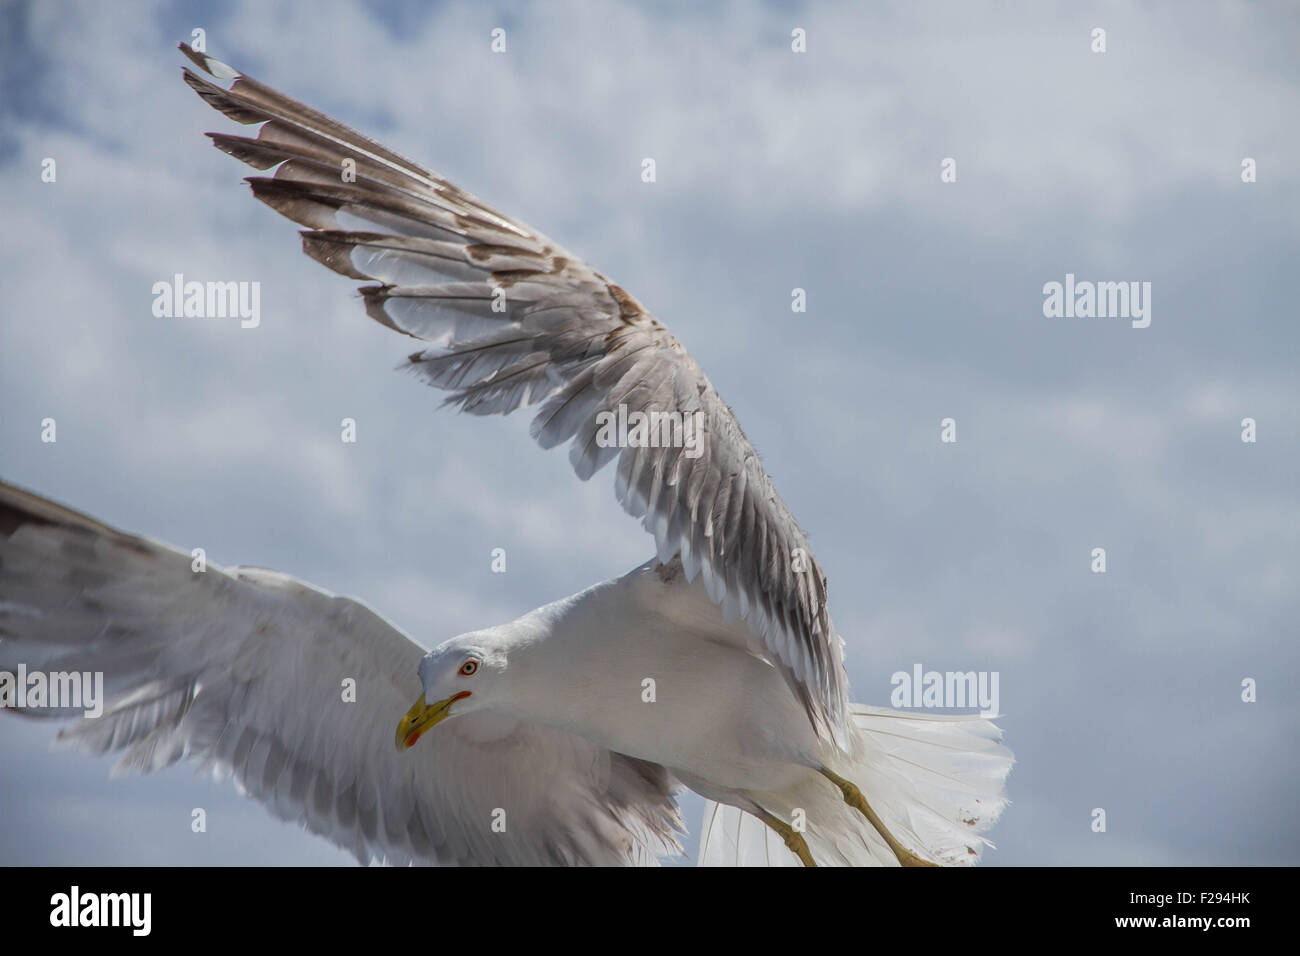 Seagull with wings swept forwards - Stock Image